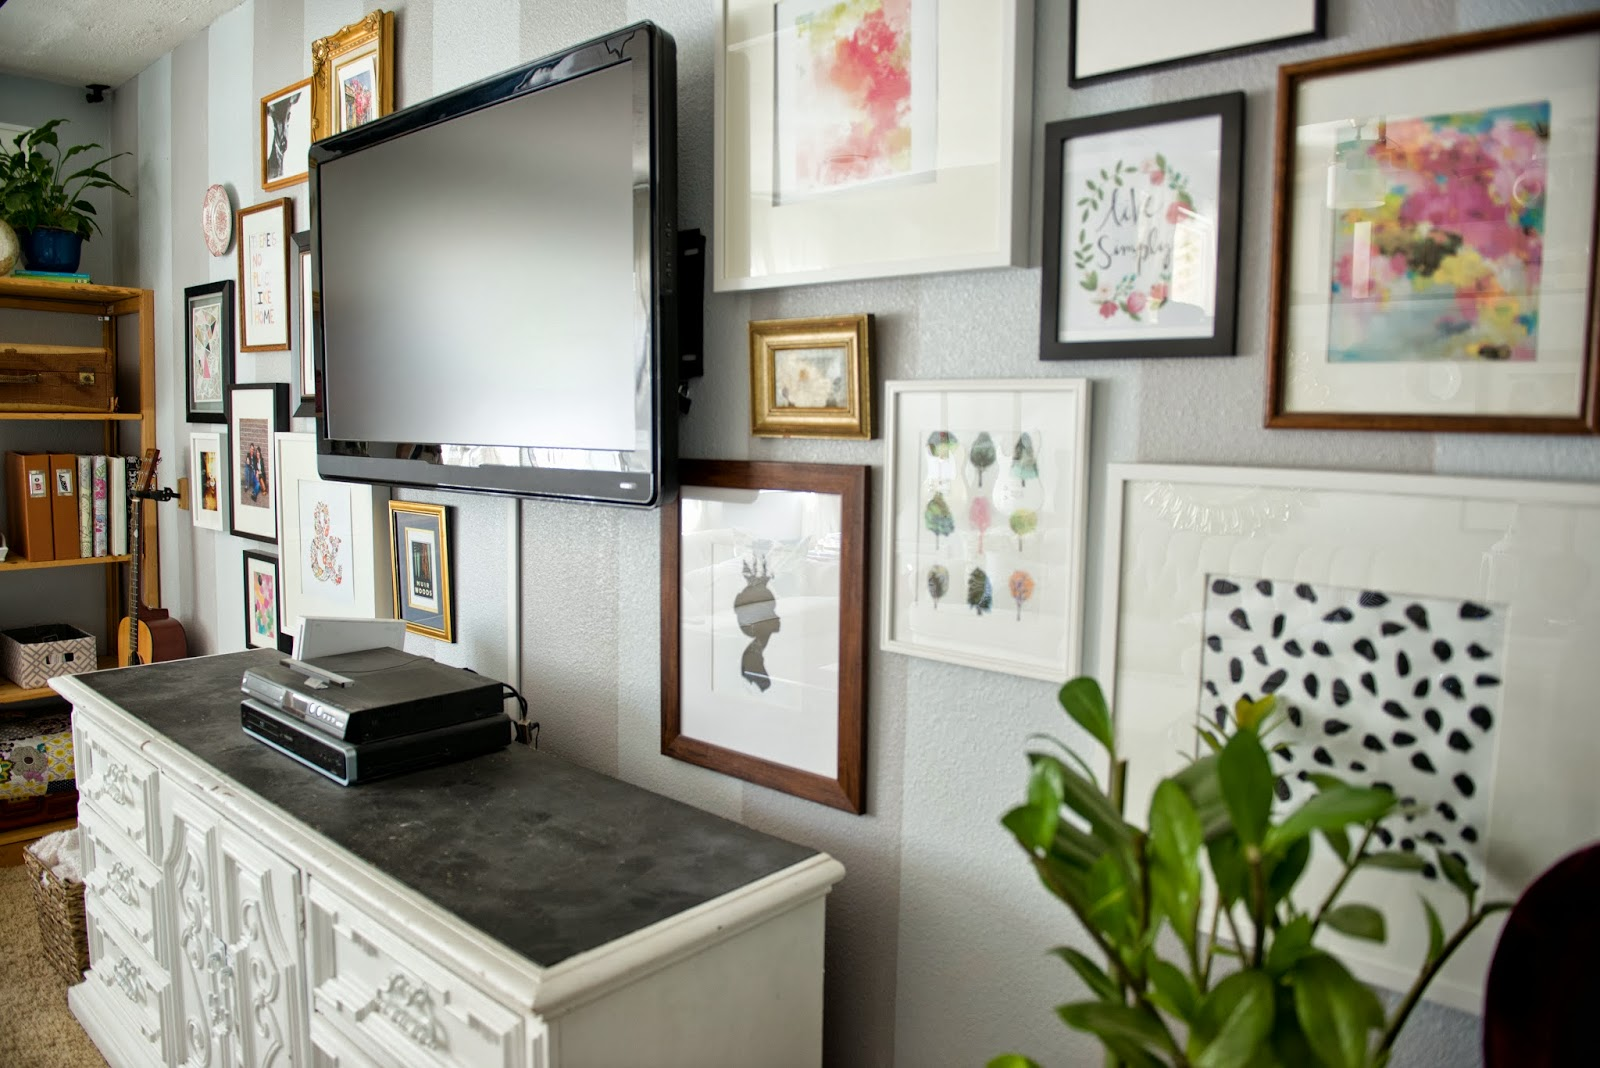 Domestic Fashionista: Decorating Around the TV and a New Shelf